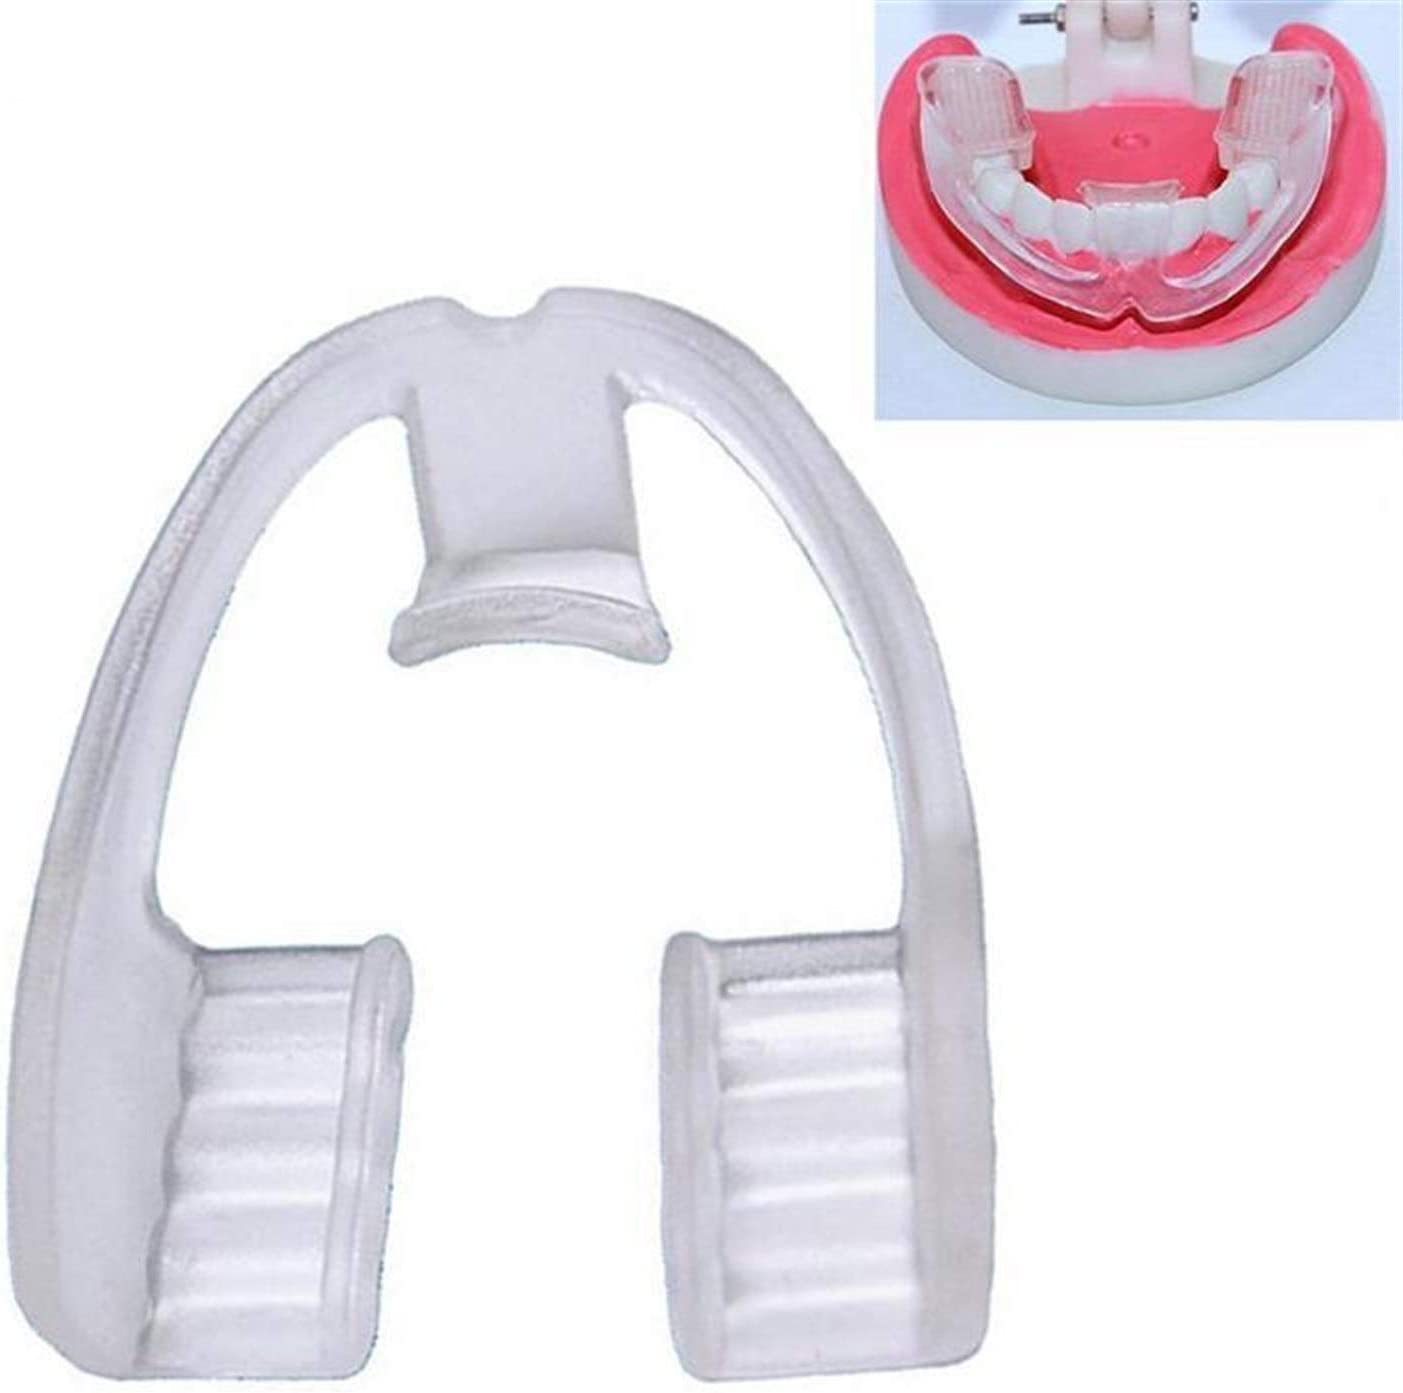 2Pcs No Need to Regrind Your Teeth at Night, Food Grade EVA Mouthguard, Dental Night Protector, Dental Mouthguard